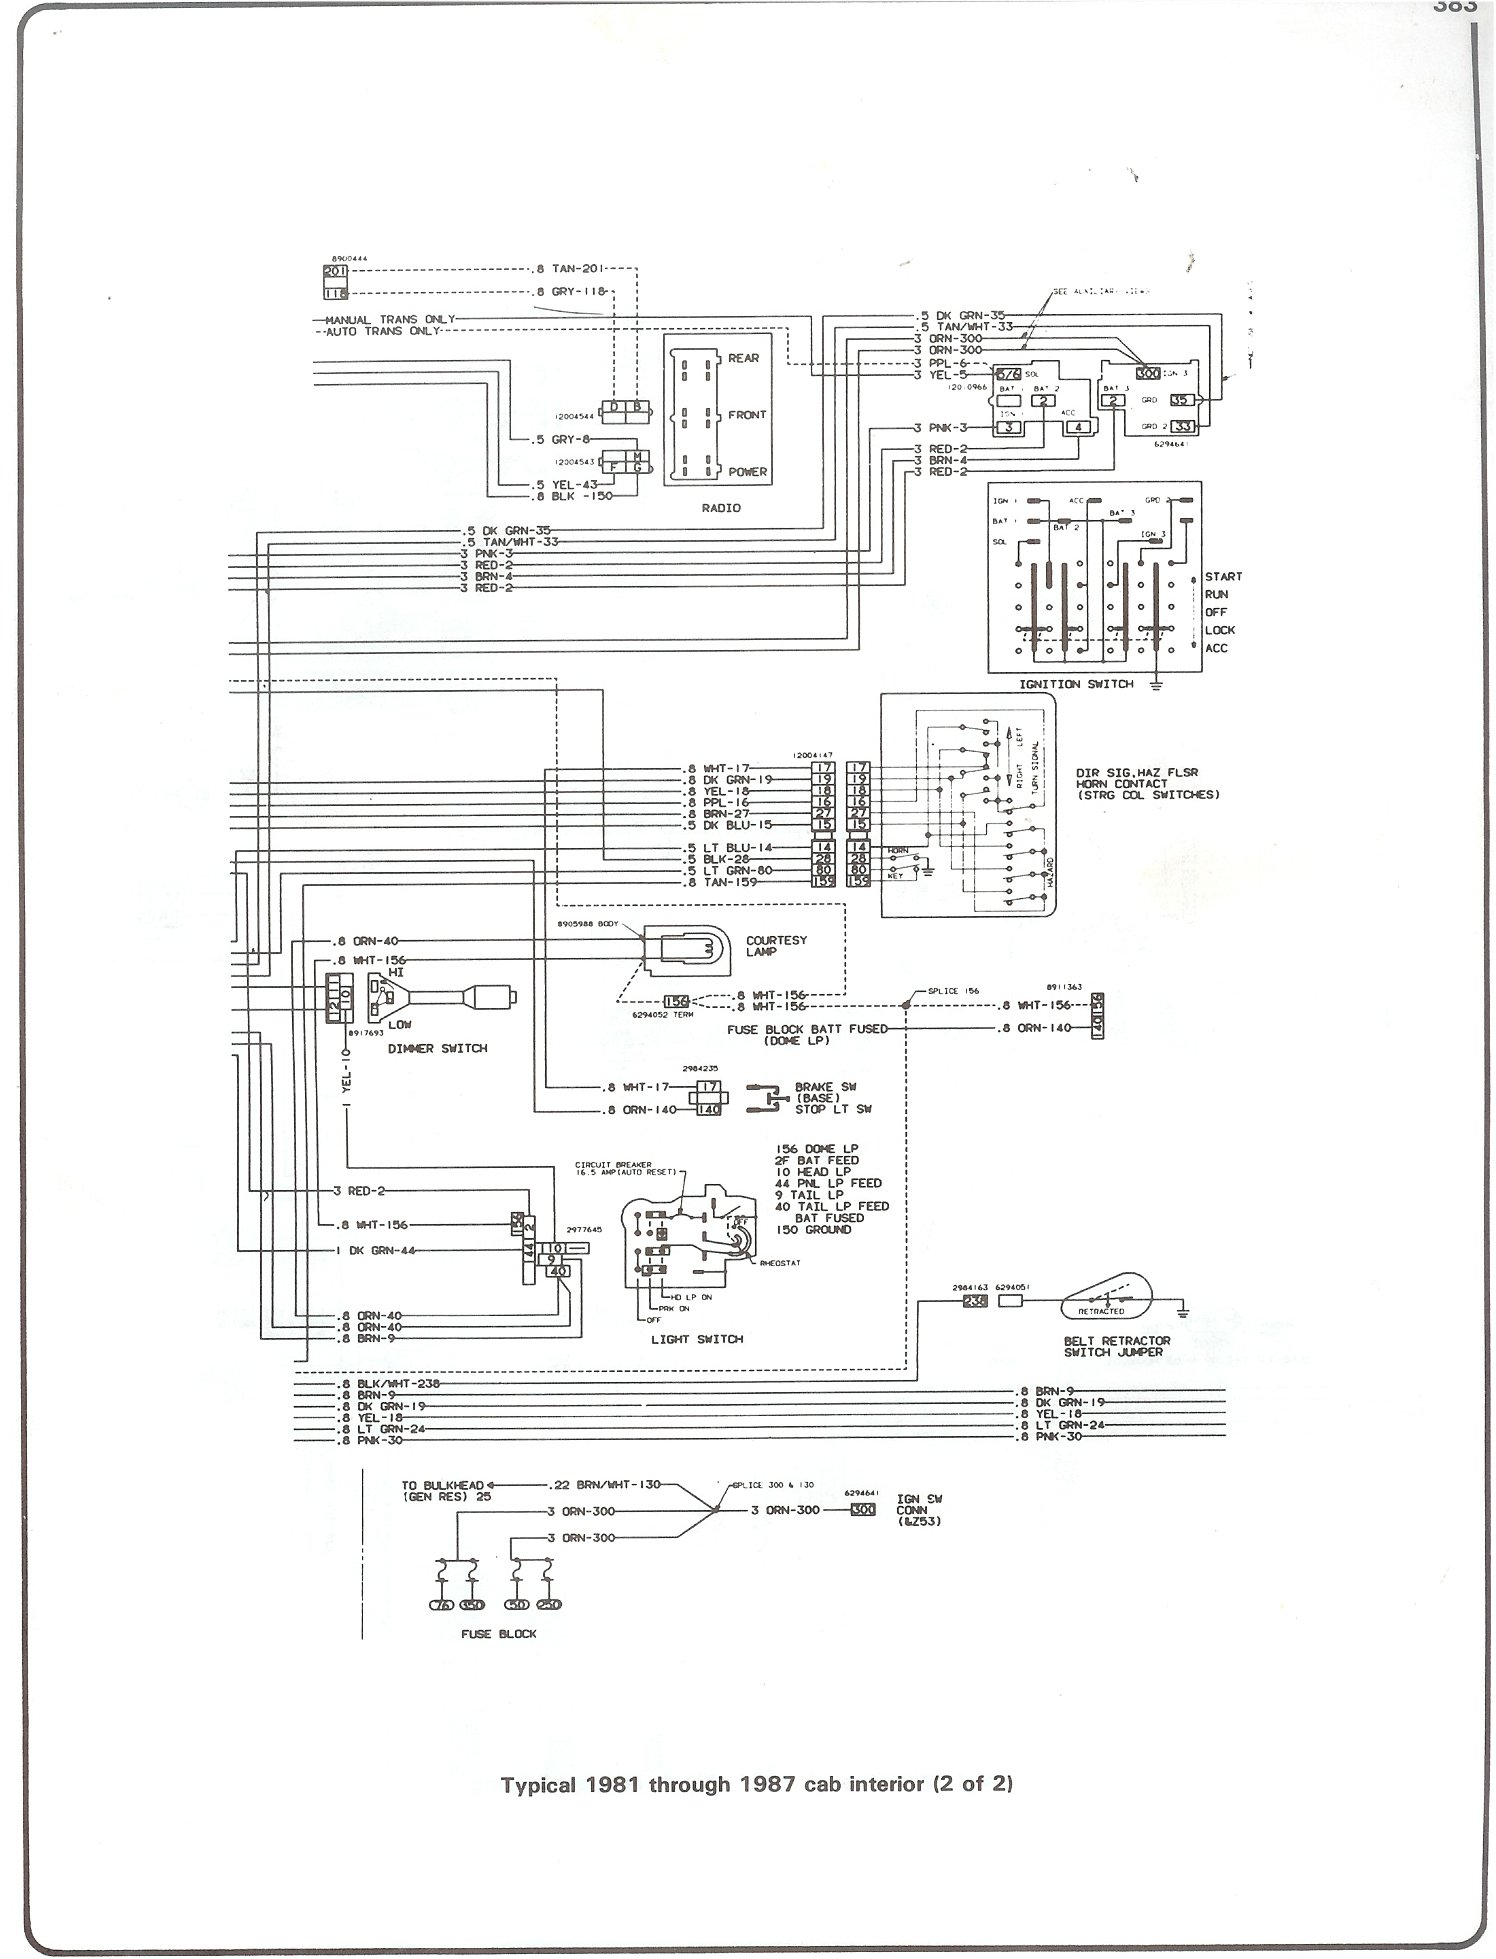 81 87_cab_inter_pg2 complete 73 87 wiring diagrams  at couponss.co